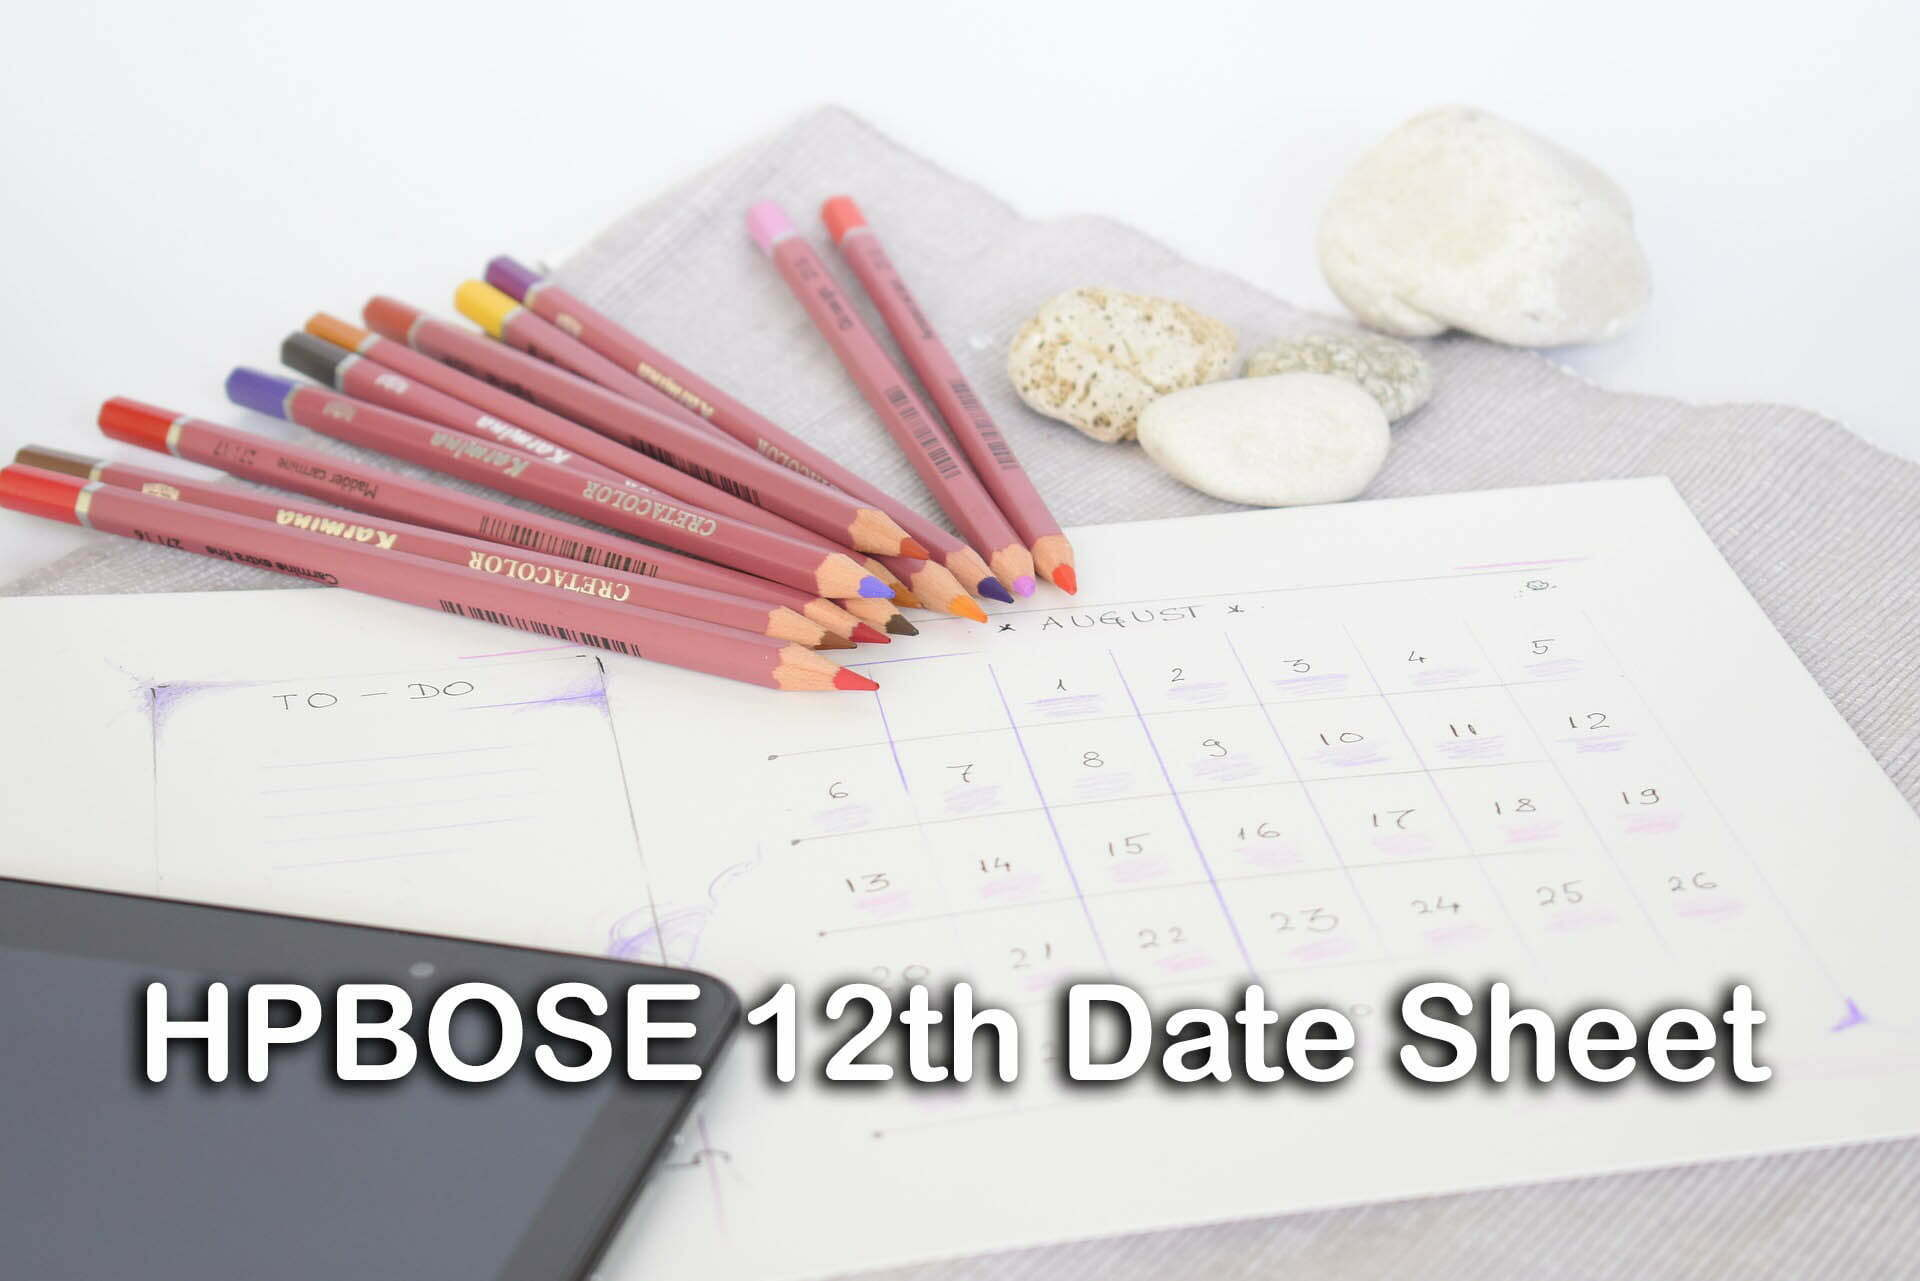 HPBOSE 12th Date Sheet 2020 : HP Board 12th Date Sheet PDF Download